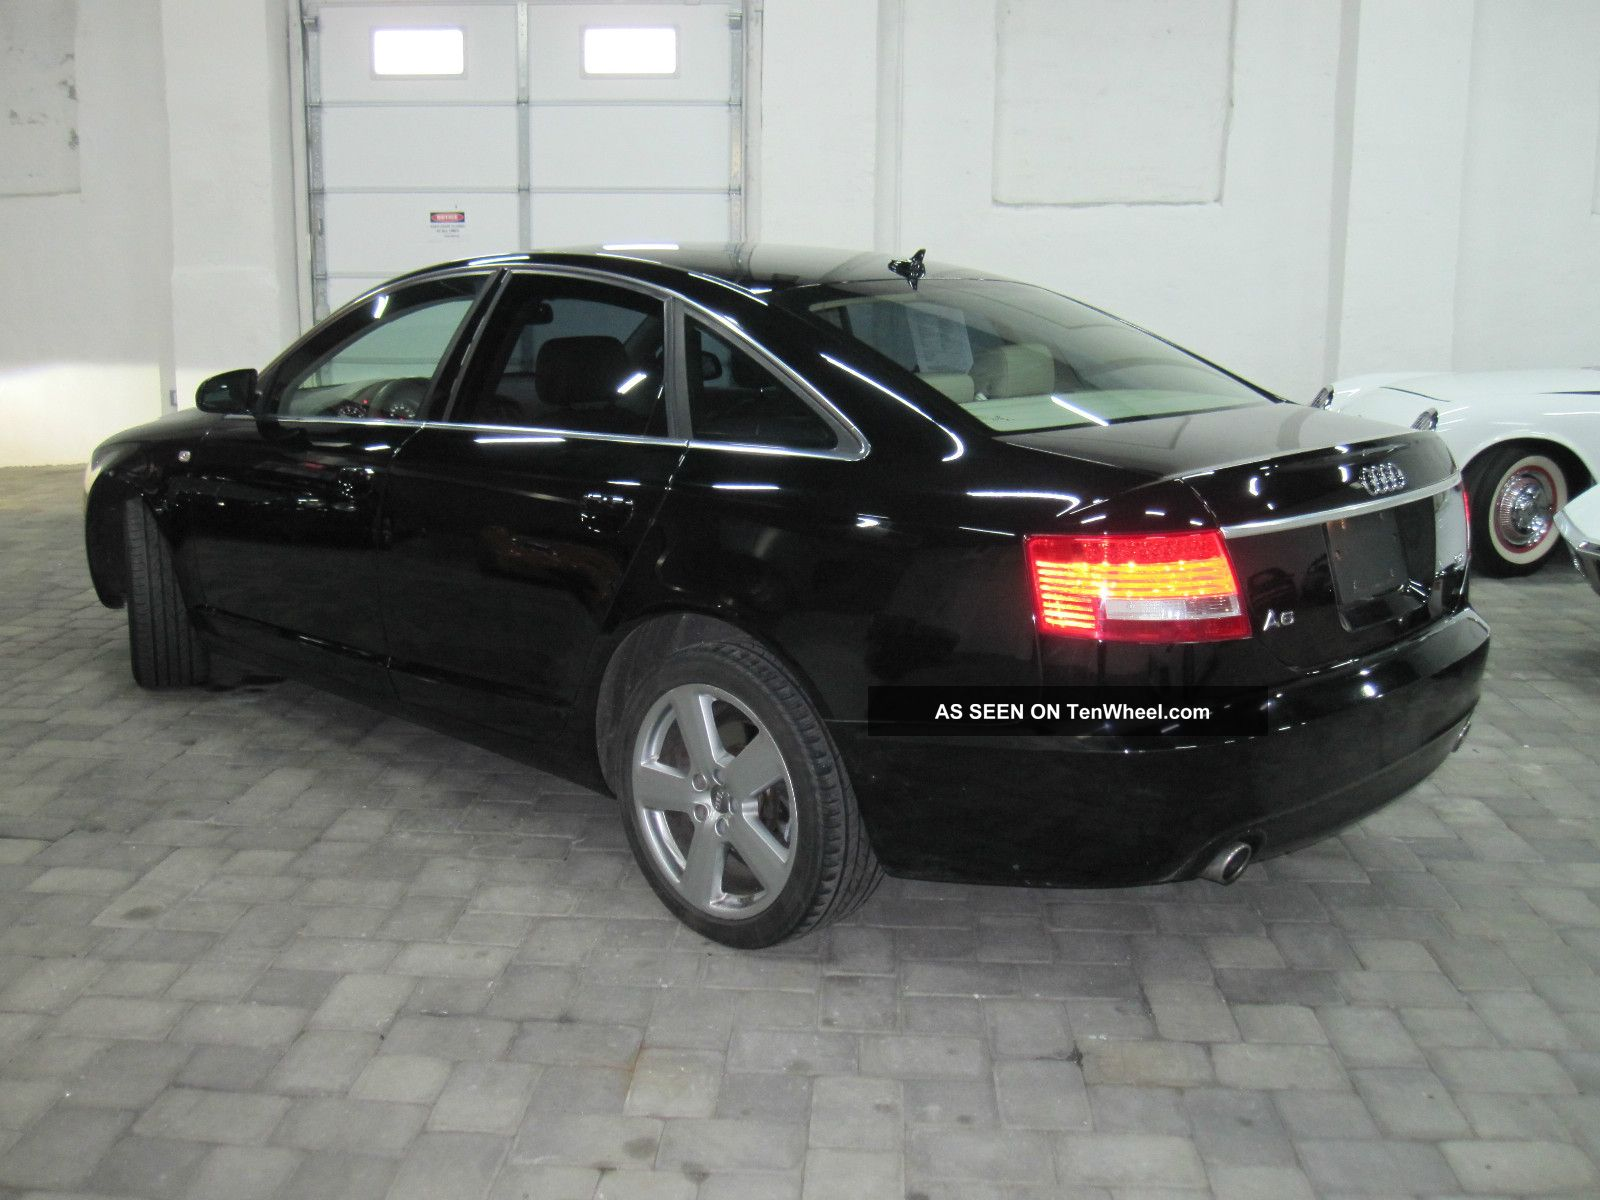 2008 audi a6 quattro awd s line 4 door 3 2l roof bose. Black Bedroom Furniture Sets. Home Design Ideas